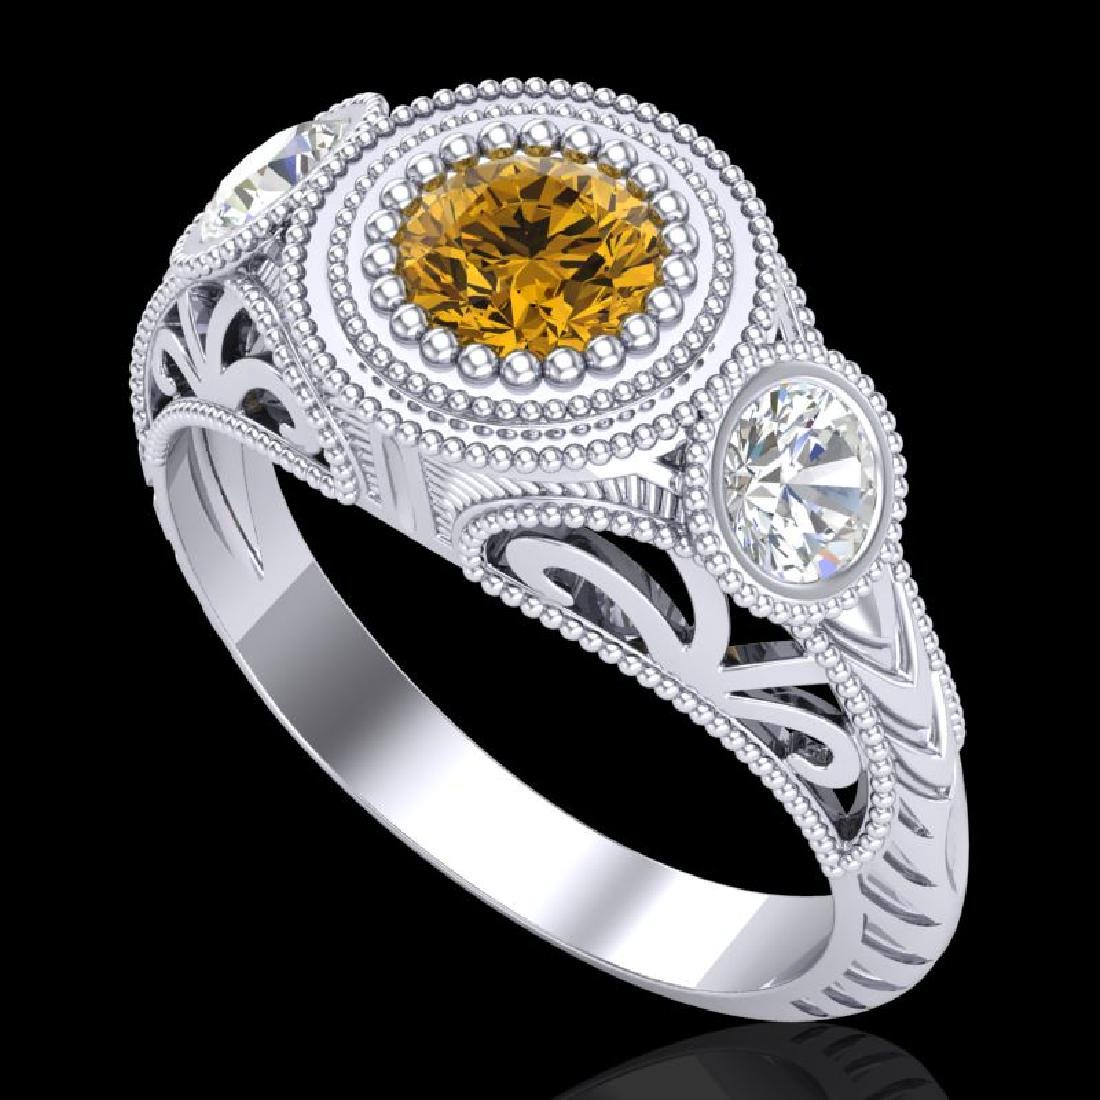 1.06 CTW Intense Fancy Yellow Diamond Art Deco 3 Stone